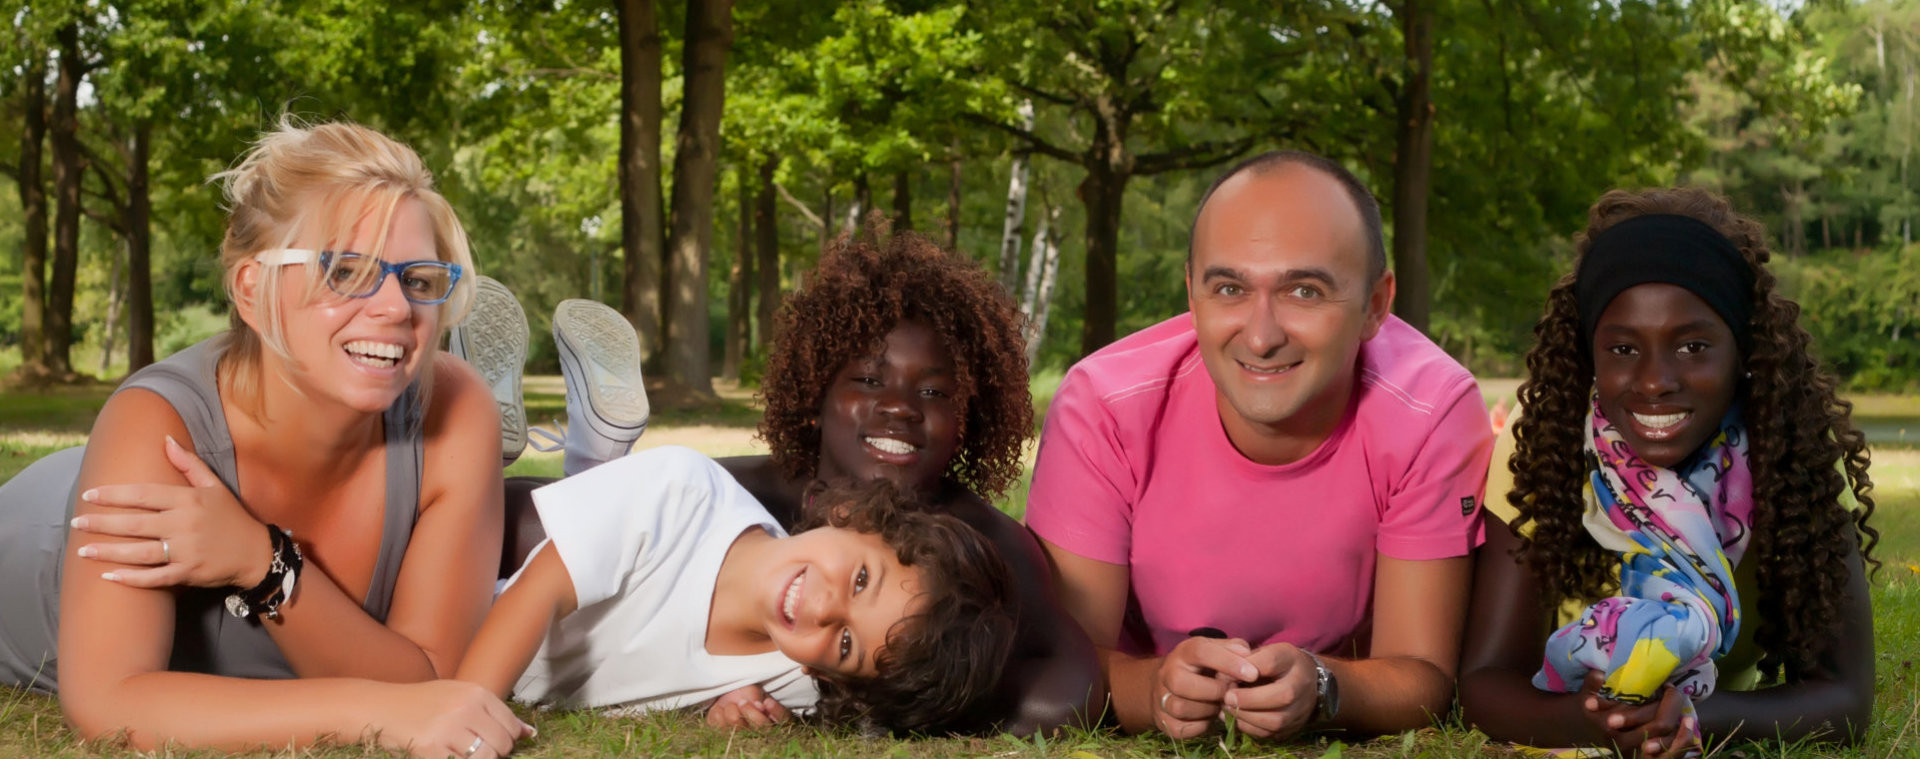 family smiling in the park